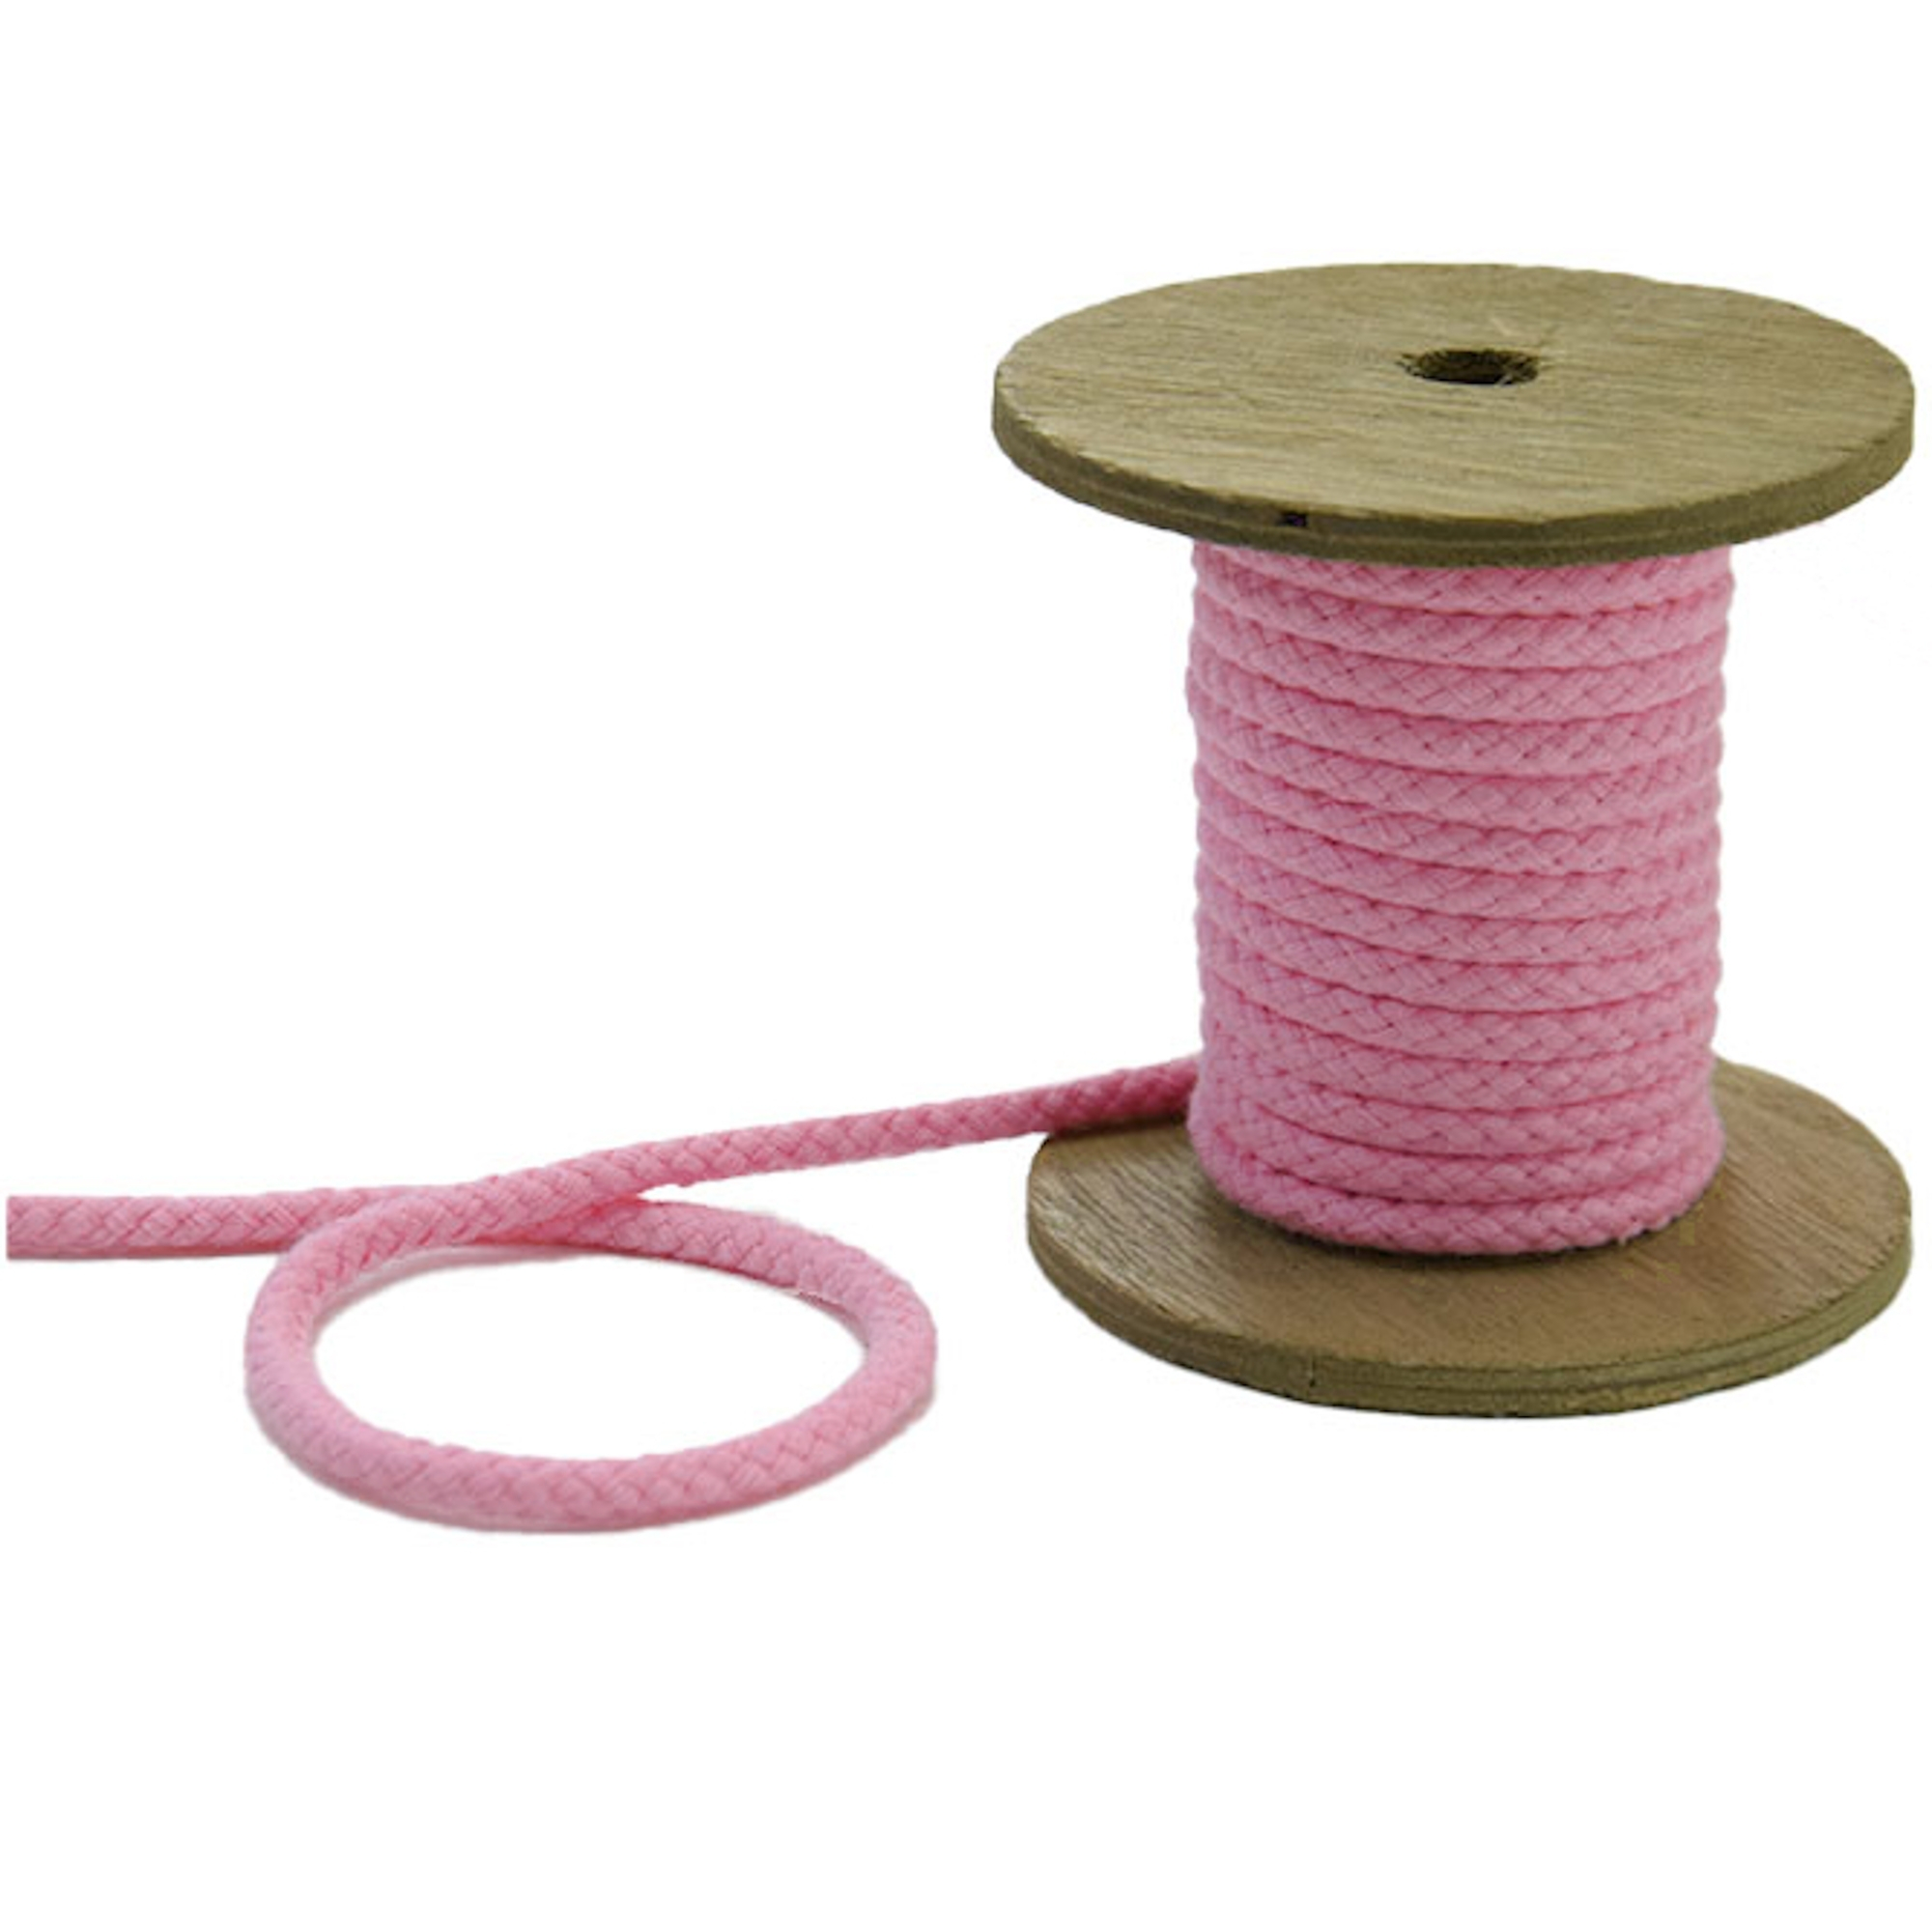 Sznurek do kurtki 5 mm, rosé | 42270 | rosa